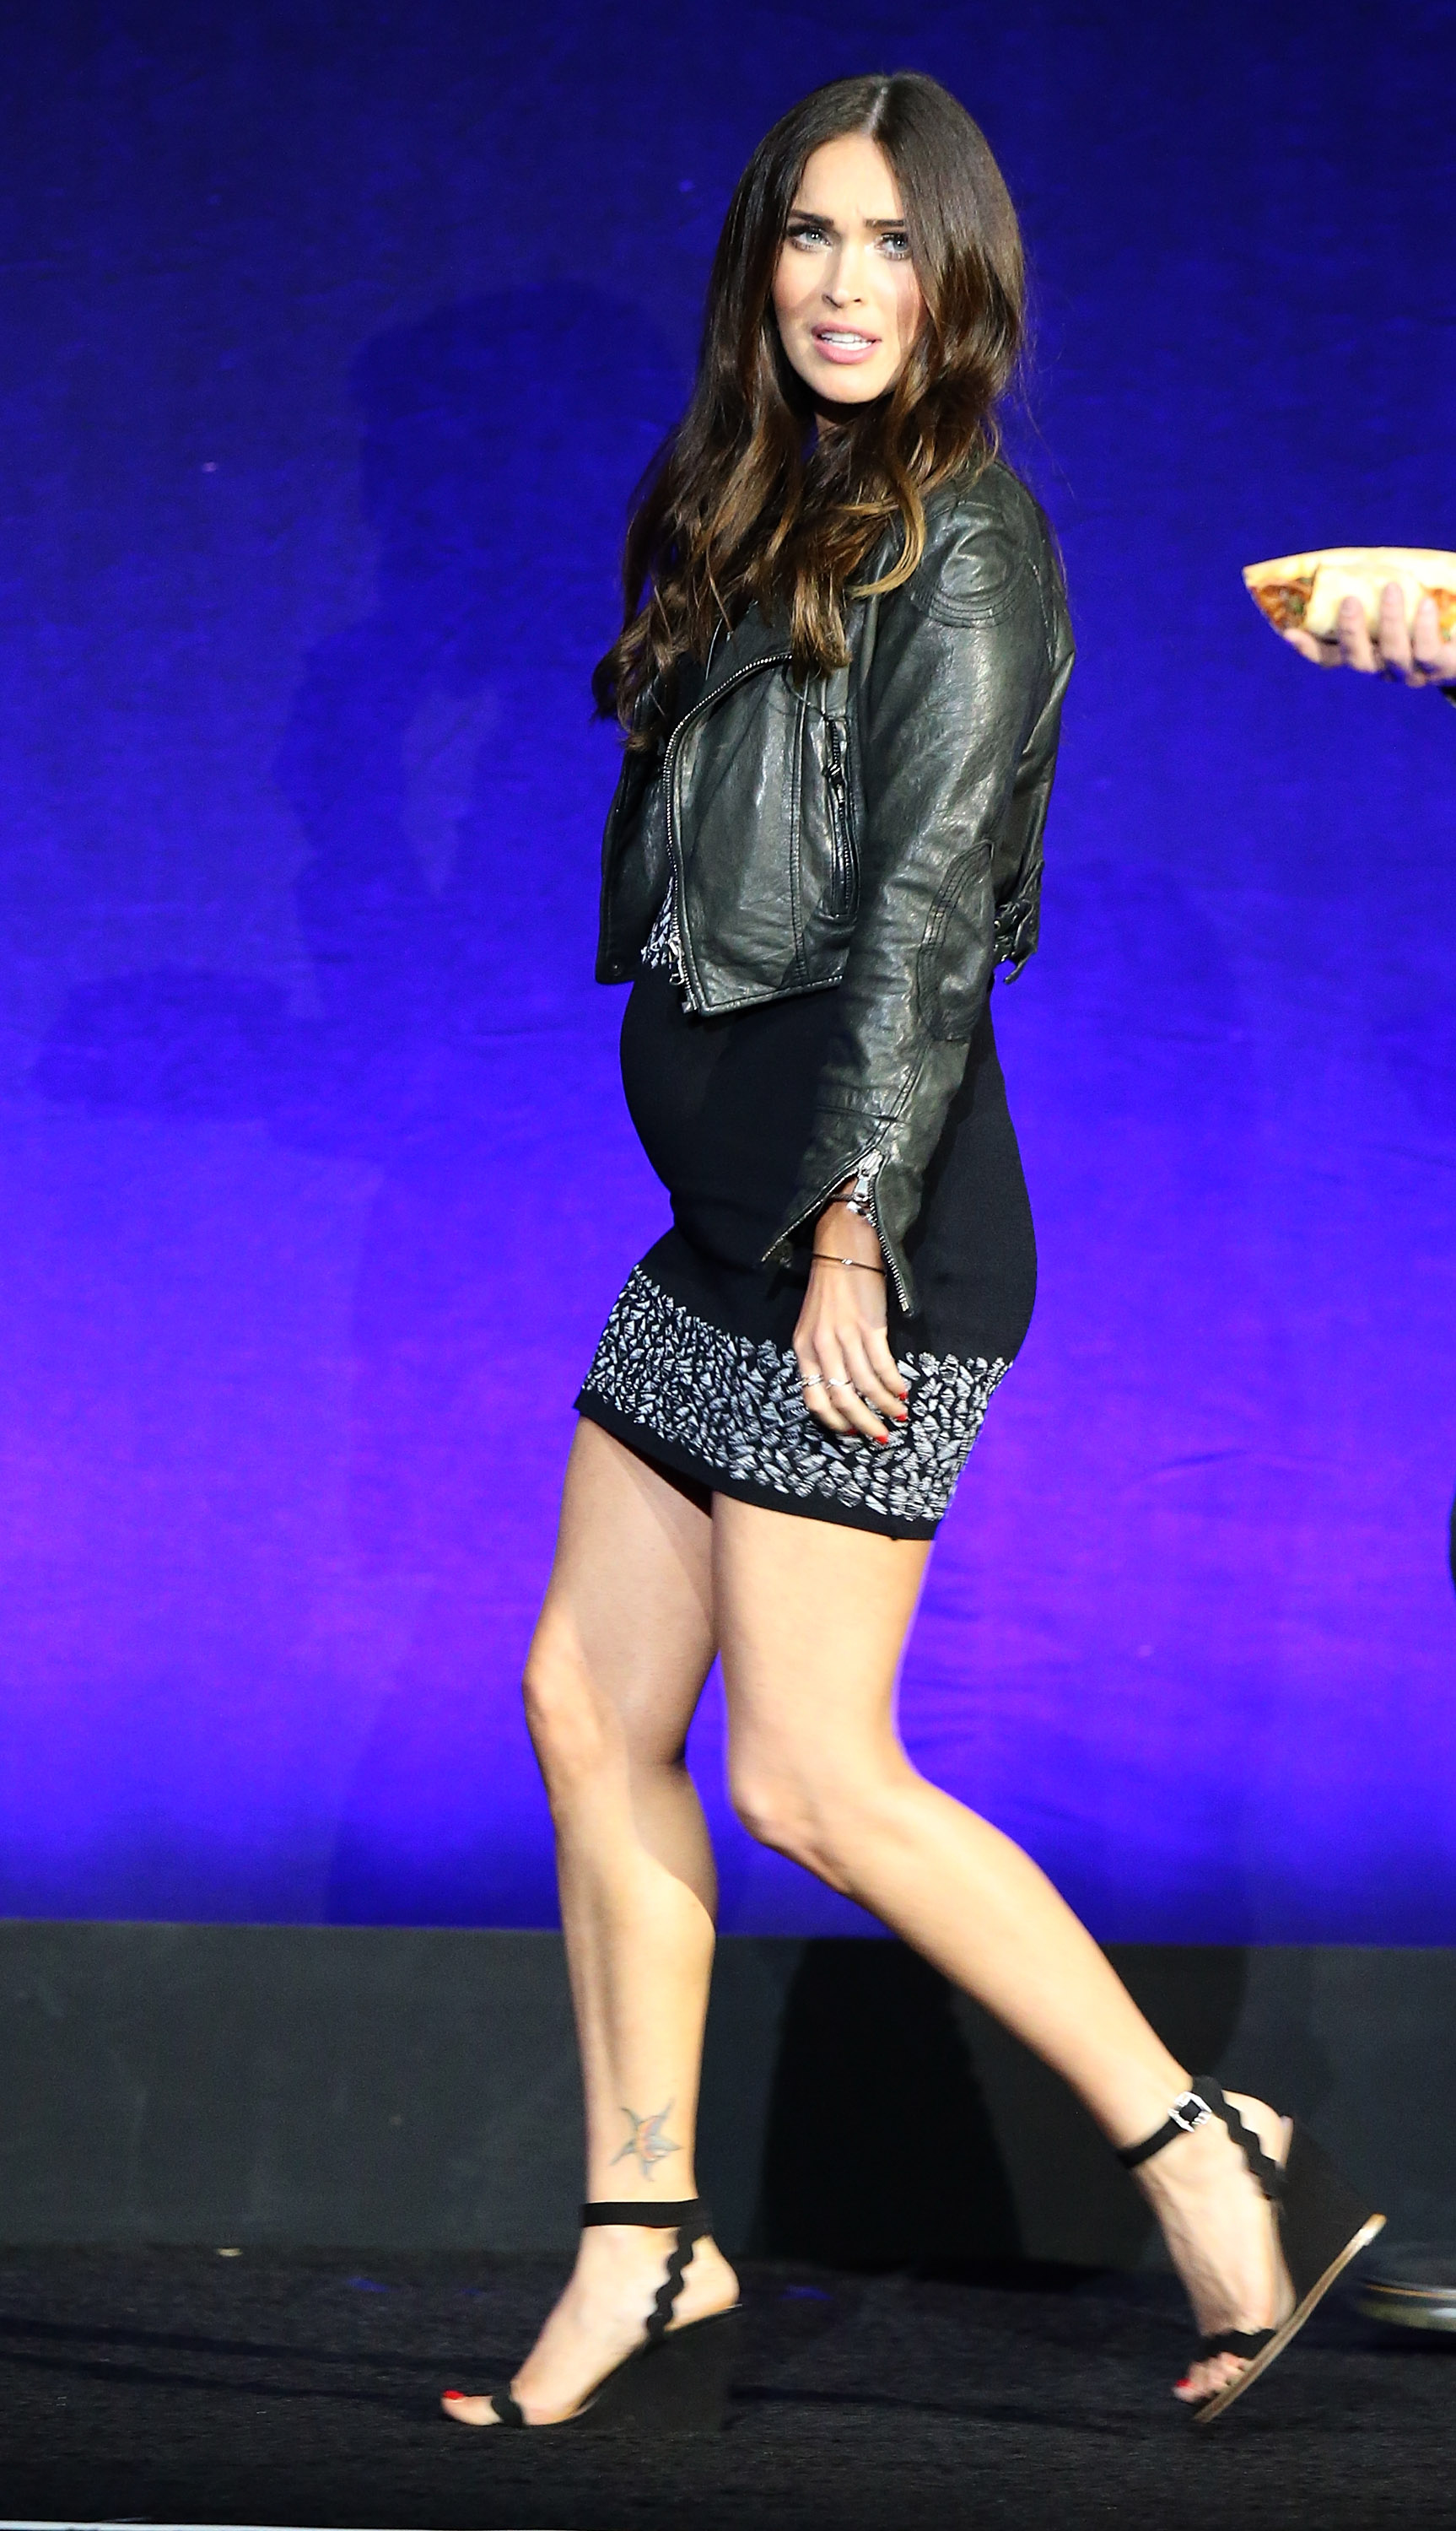 Megan-Fox-onstage-during-CinemaCon-2016-Paramount-Pictures-opening-night-presentation-held-at-The-Colosseum-at-Caesars-Palace-on-April-11-2016-in-Las-Vegas